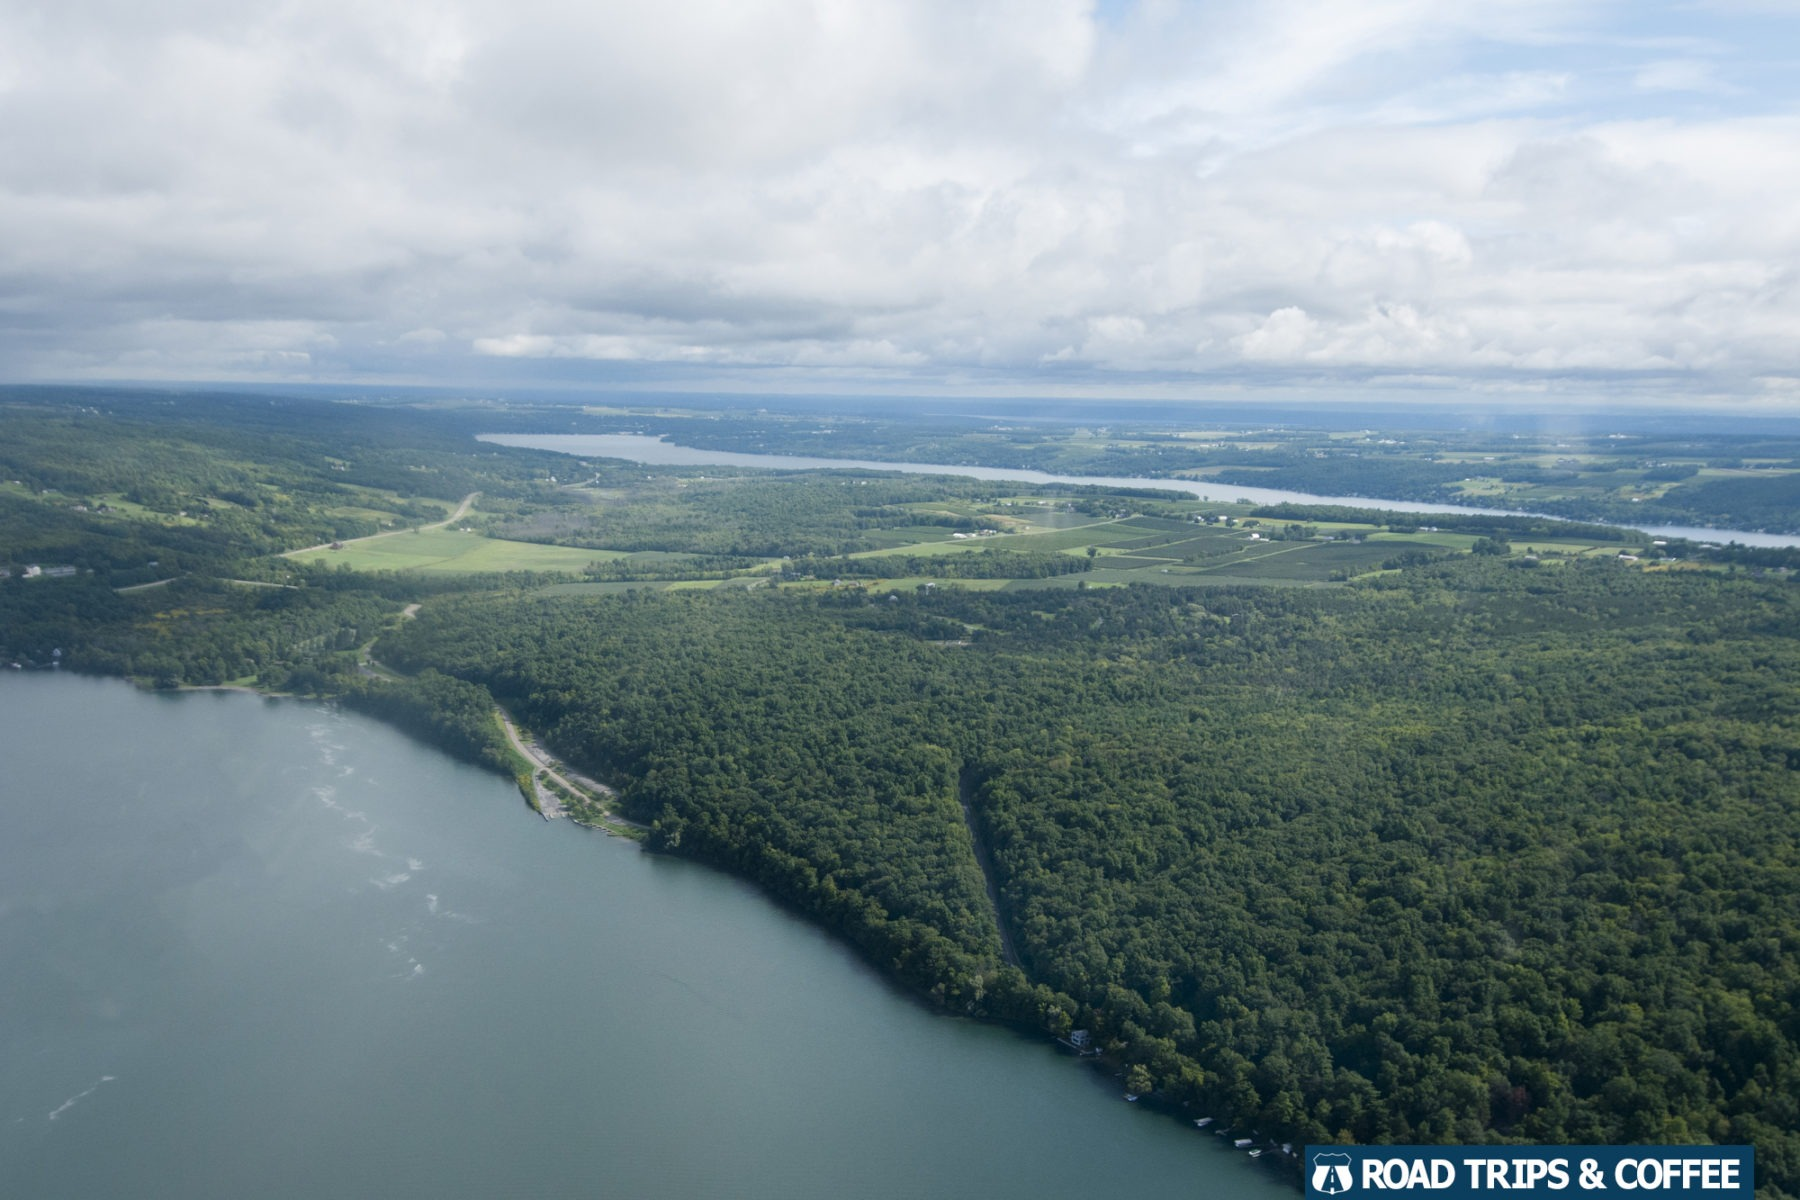 The view from a seaplane tour over Keuka Lake in Hammondsport, New York